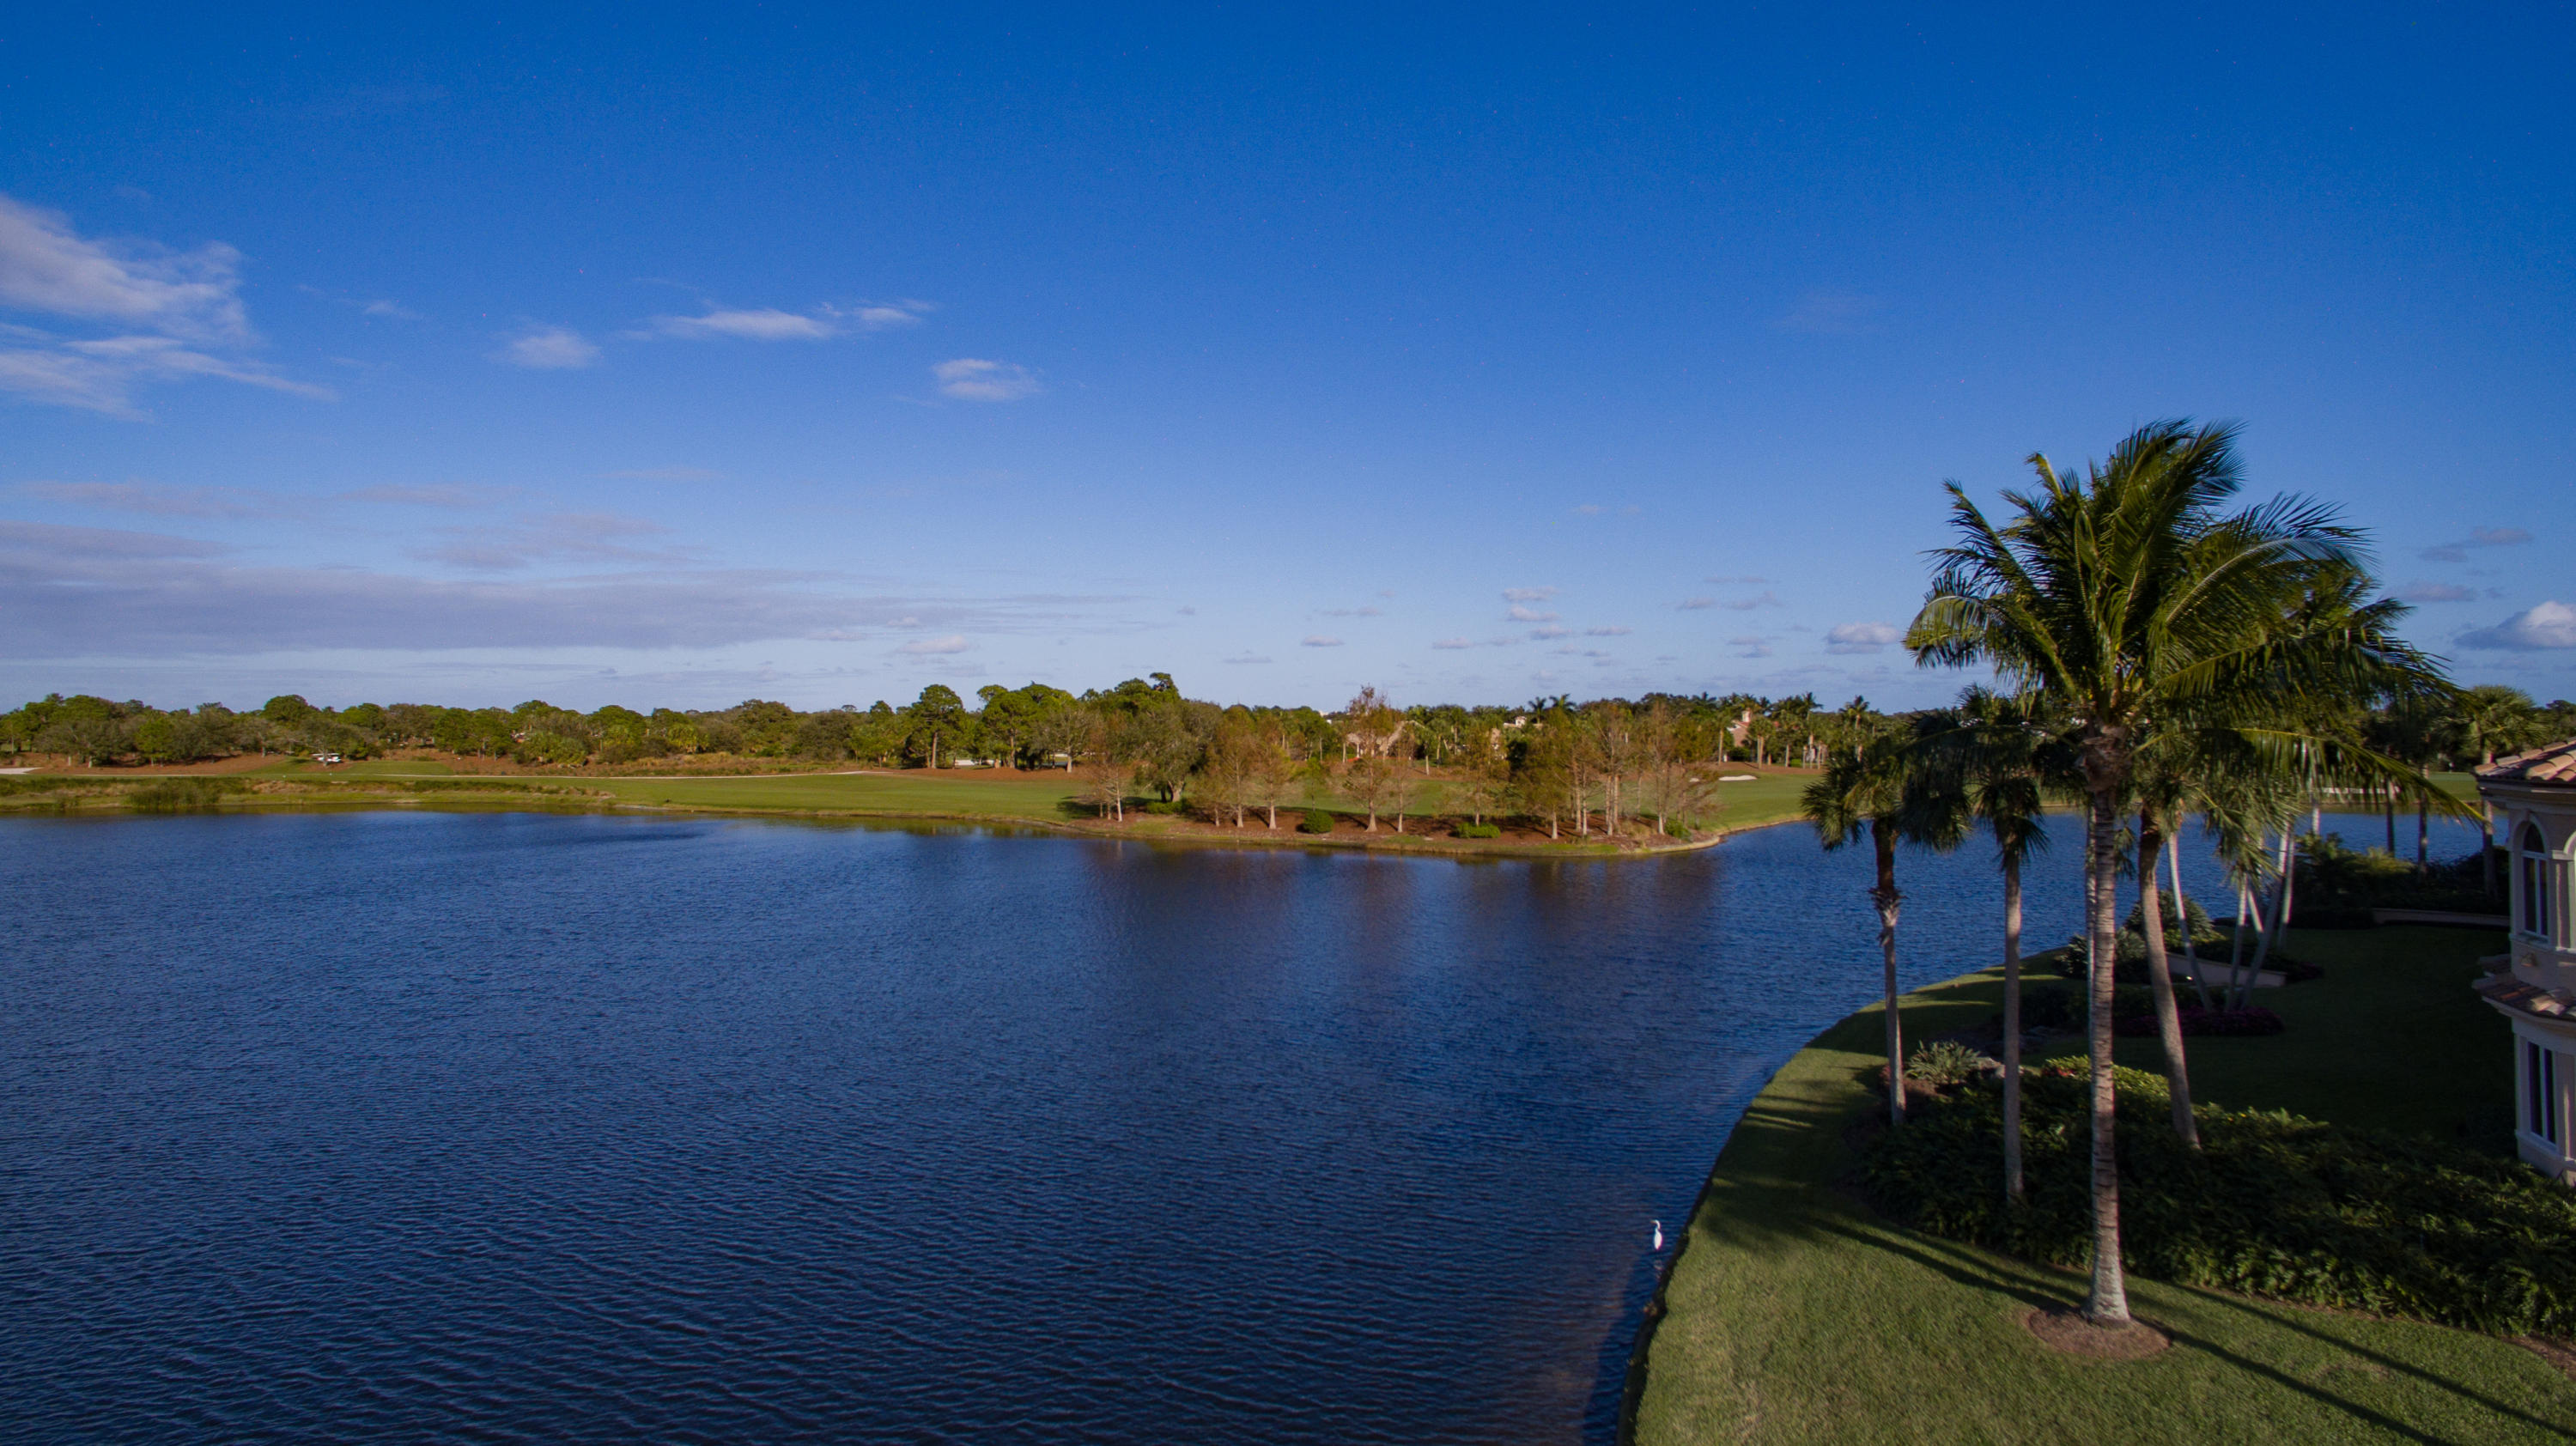 LOXAHATCHEE CLUB AT MAPLEWOOD PL 7 PH 2  LT 25 (LESS WLY 63.94 FT) & LT 26